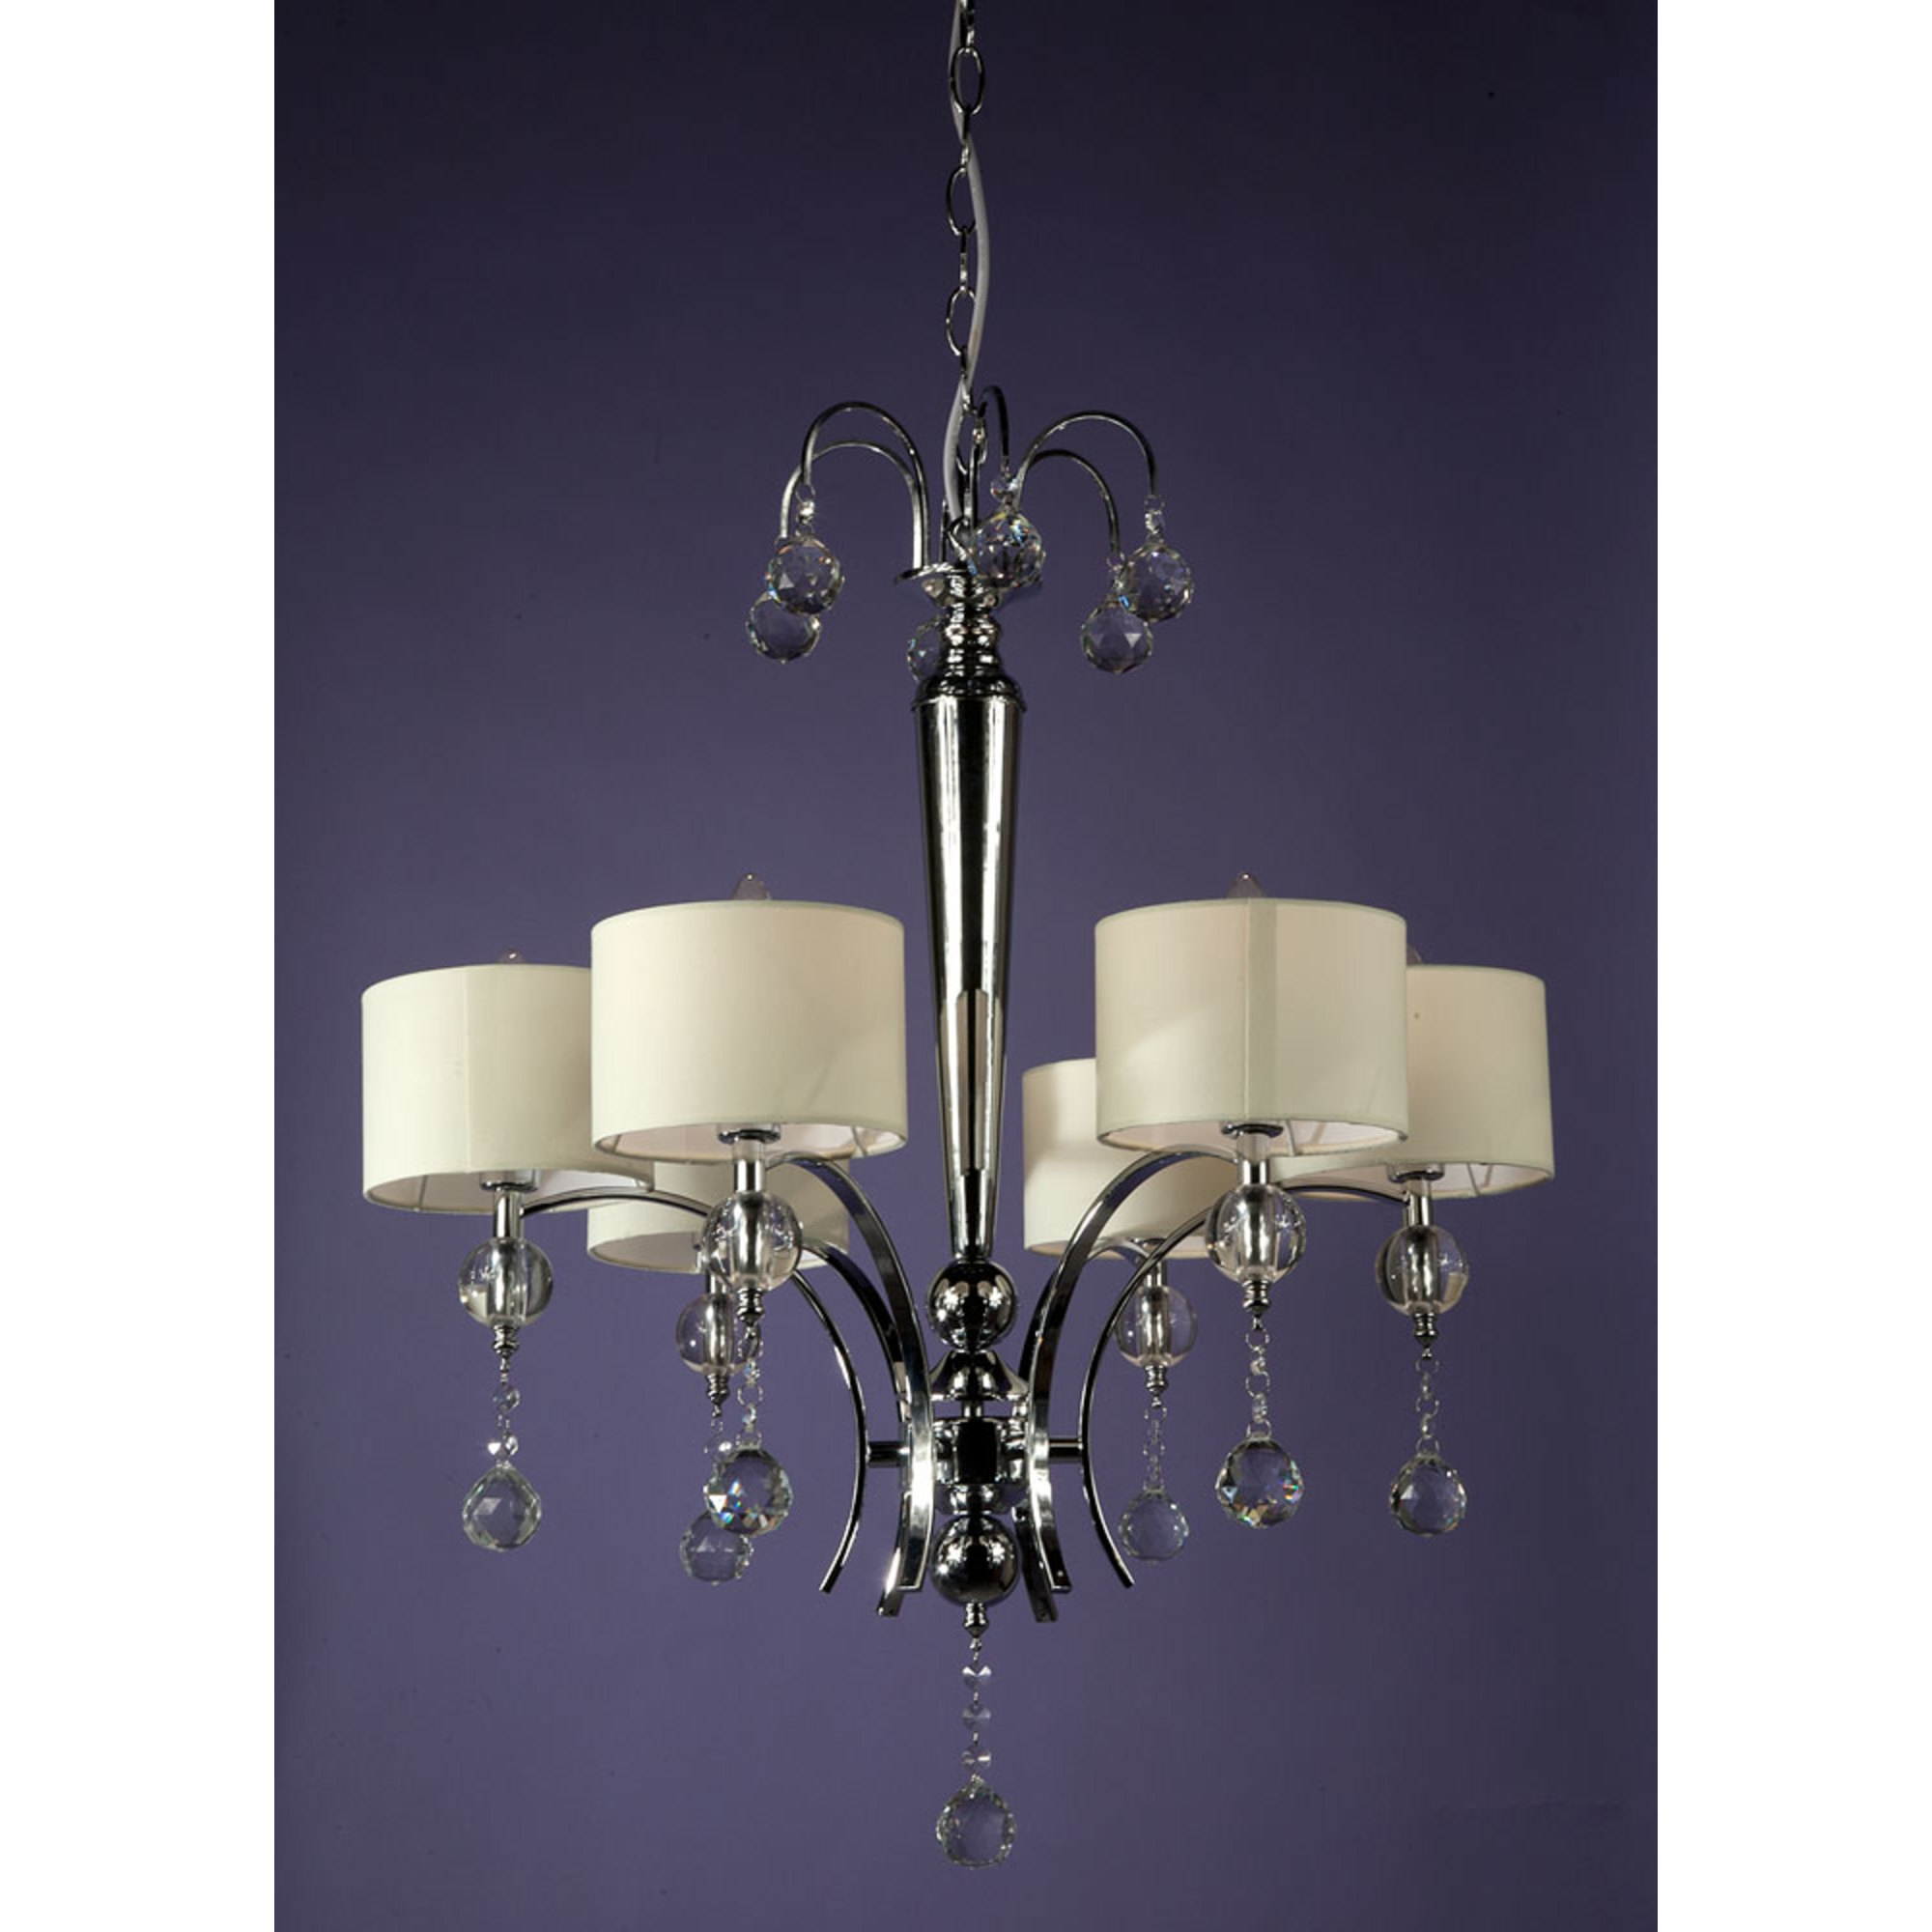 6 Light Chandelier - Chrome and White